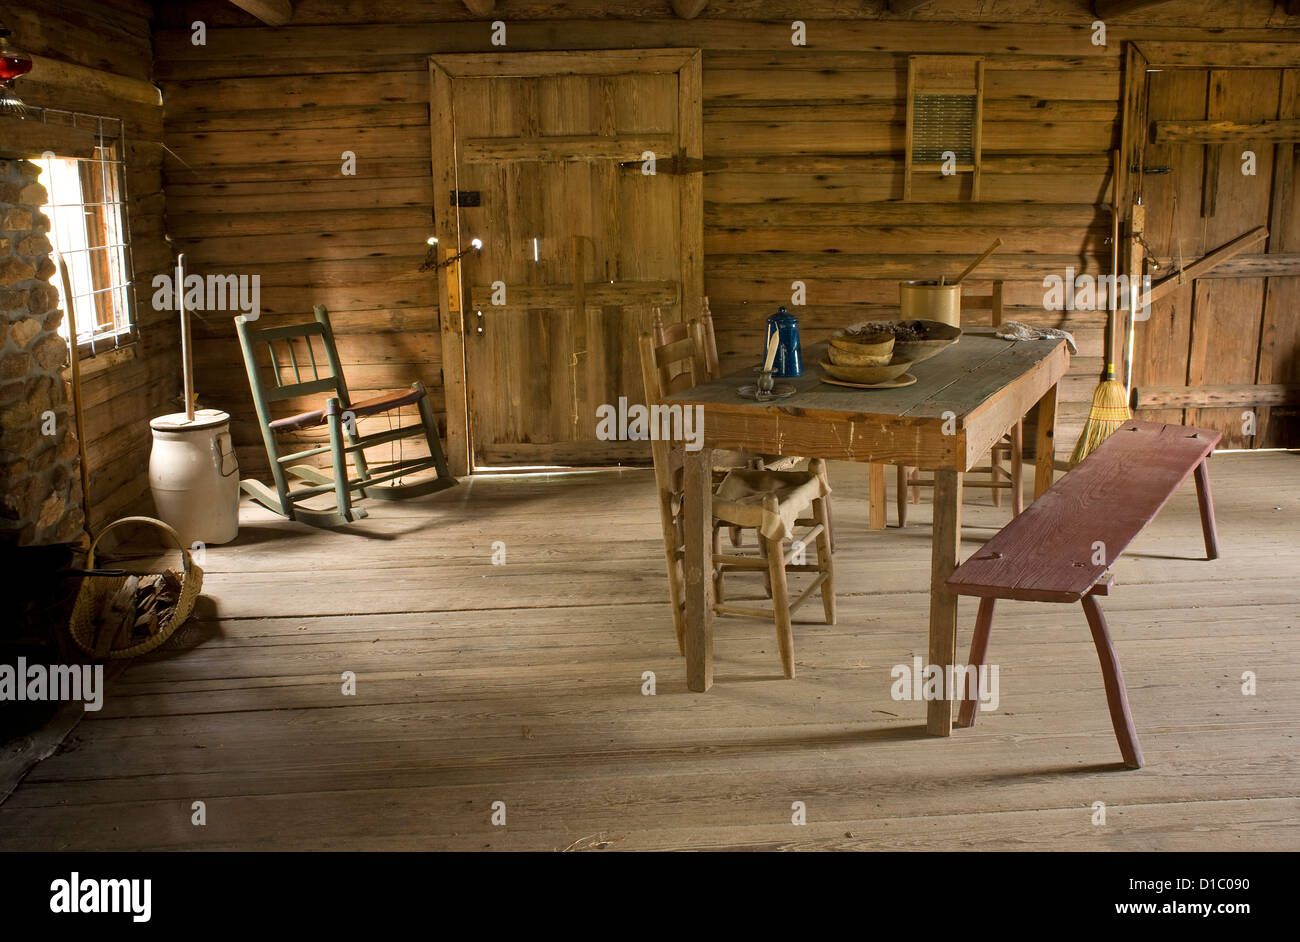 GA00140-00...GEORGIA - Interior of Meeks Cabin in General Coffee State Park. - Stock Image